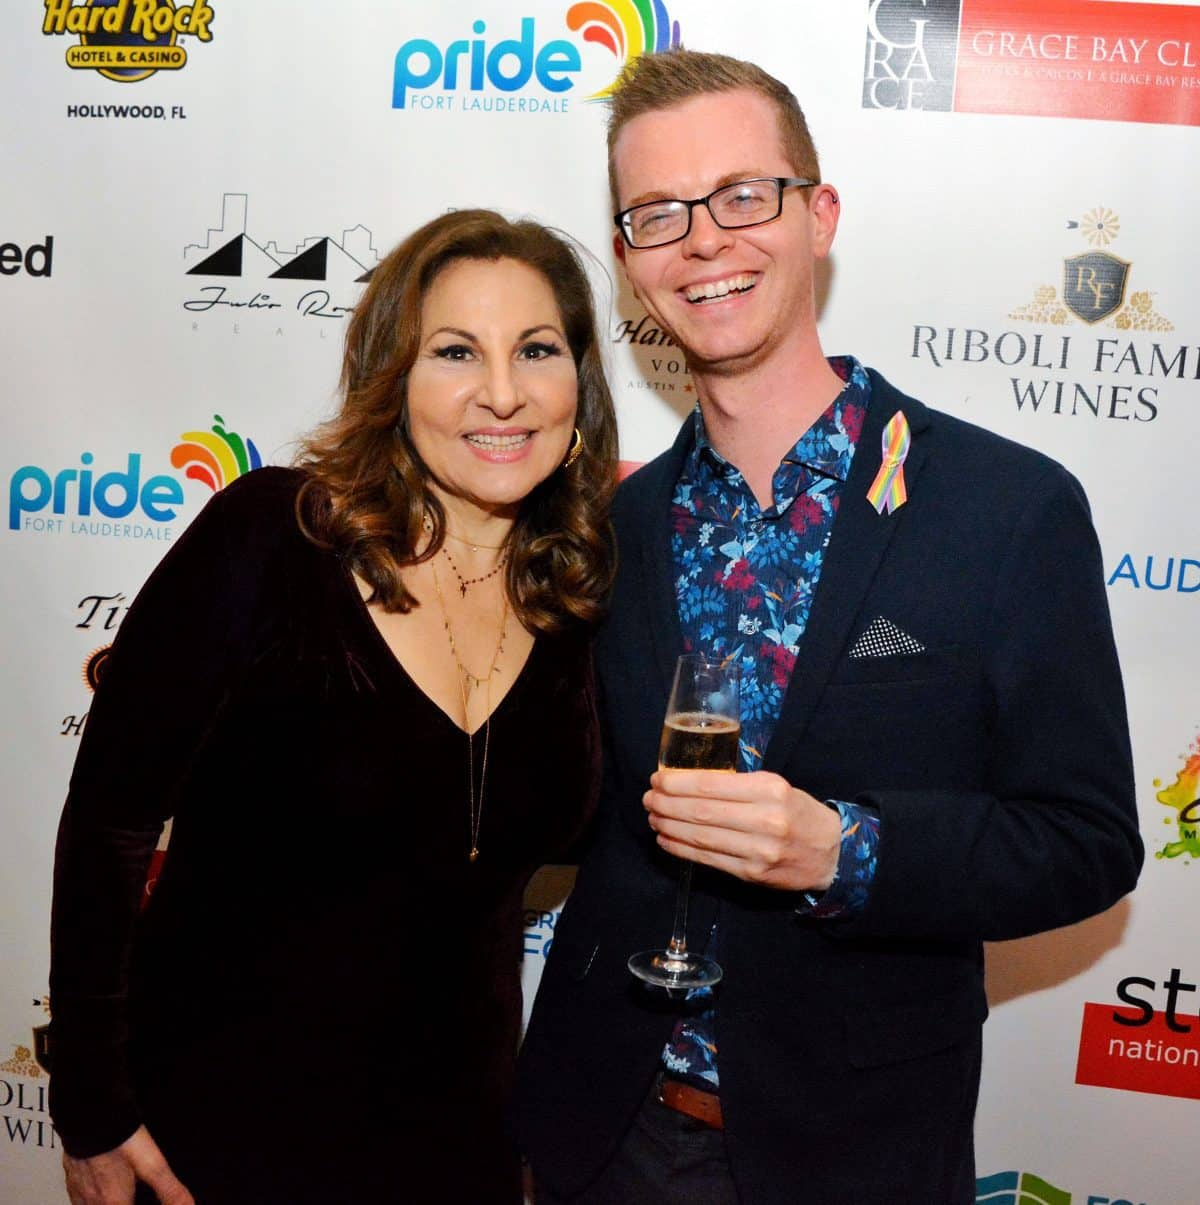 Pride Gala for Stonewall Museum